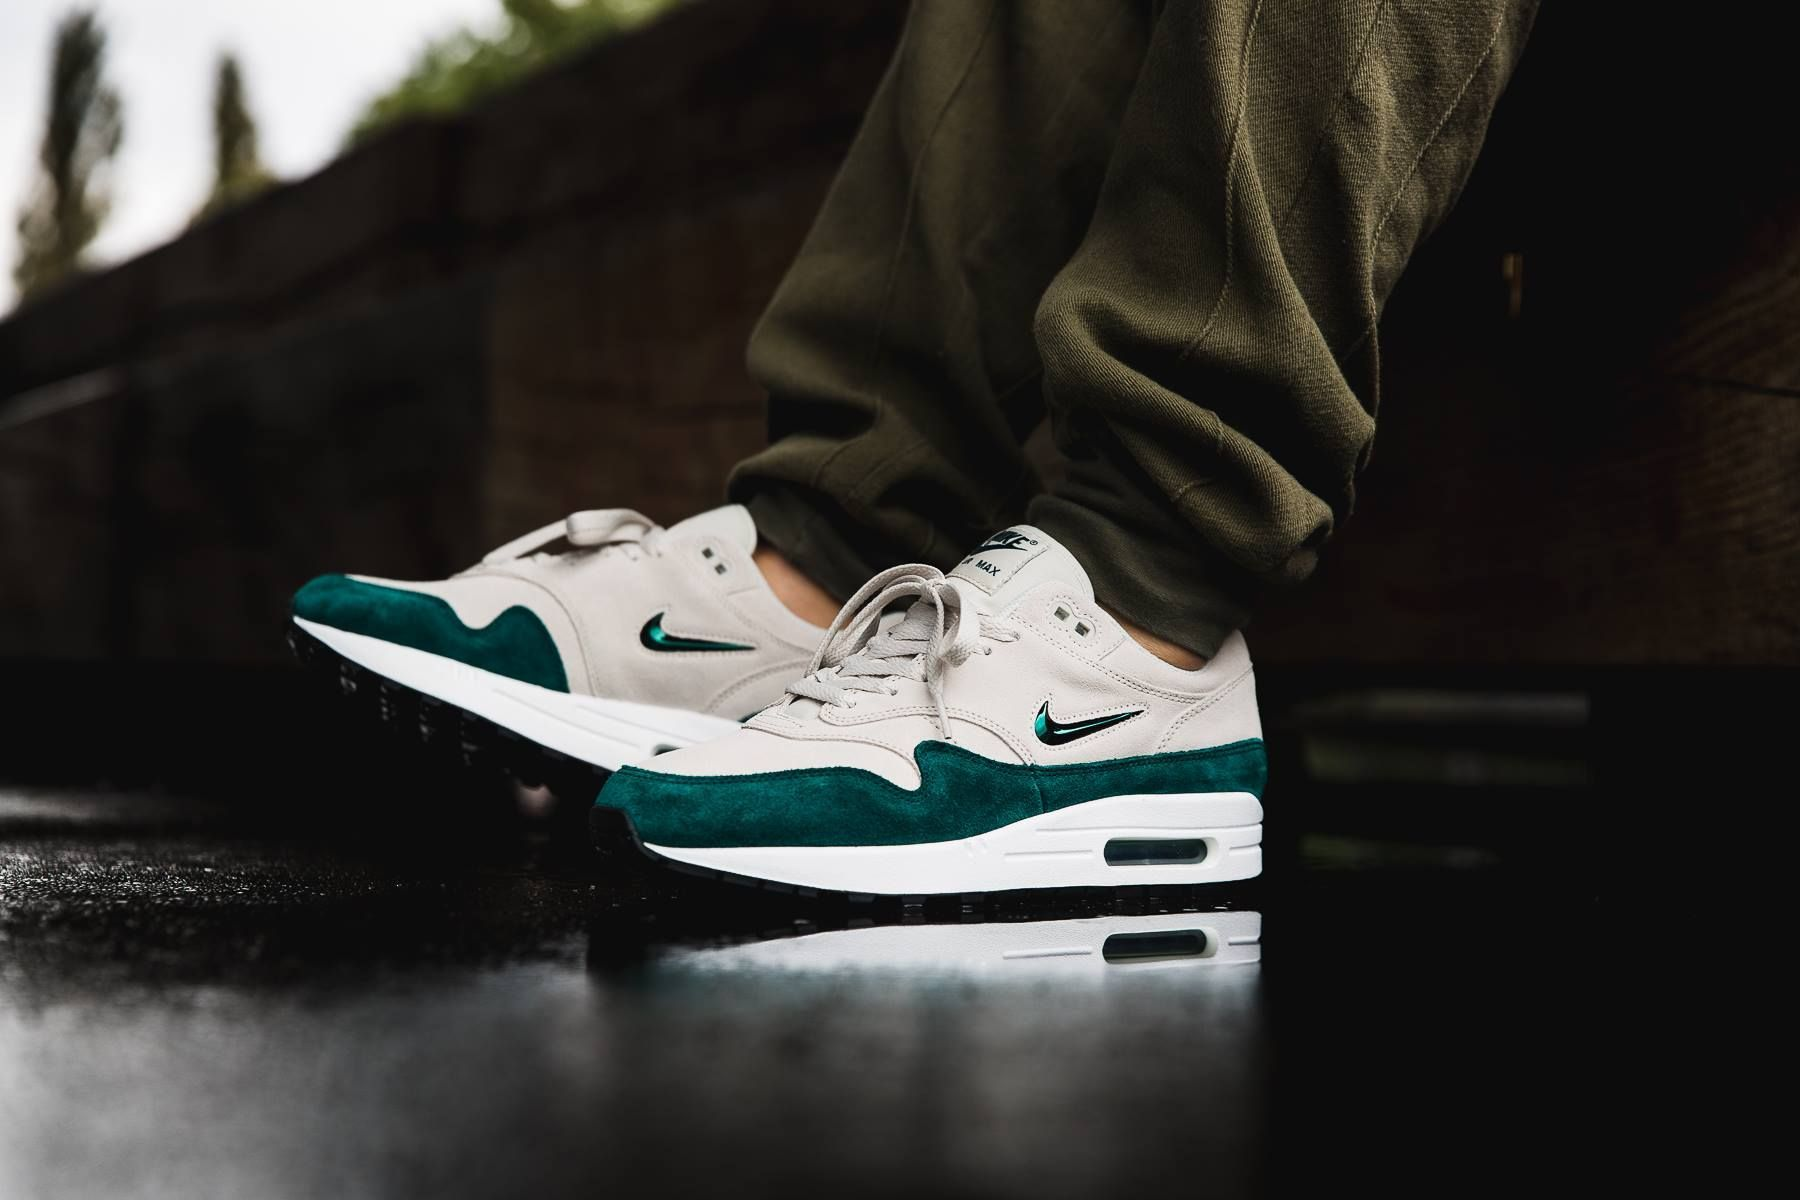 air max 1 premium sc jewel atomic teal nz